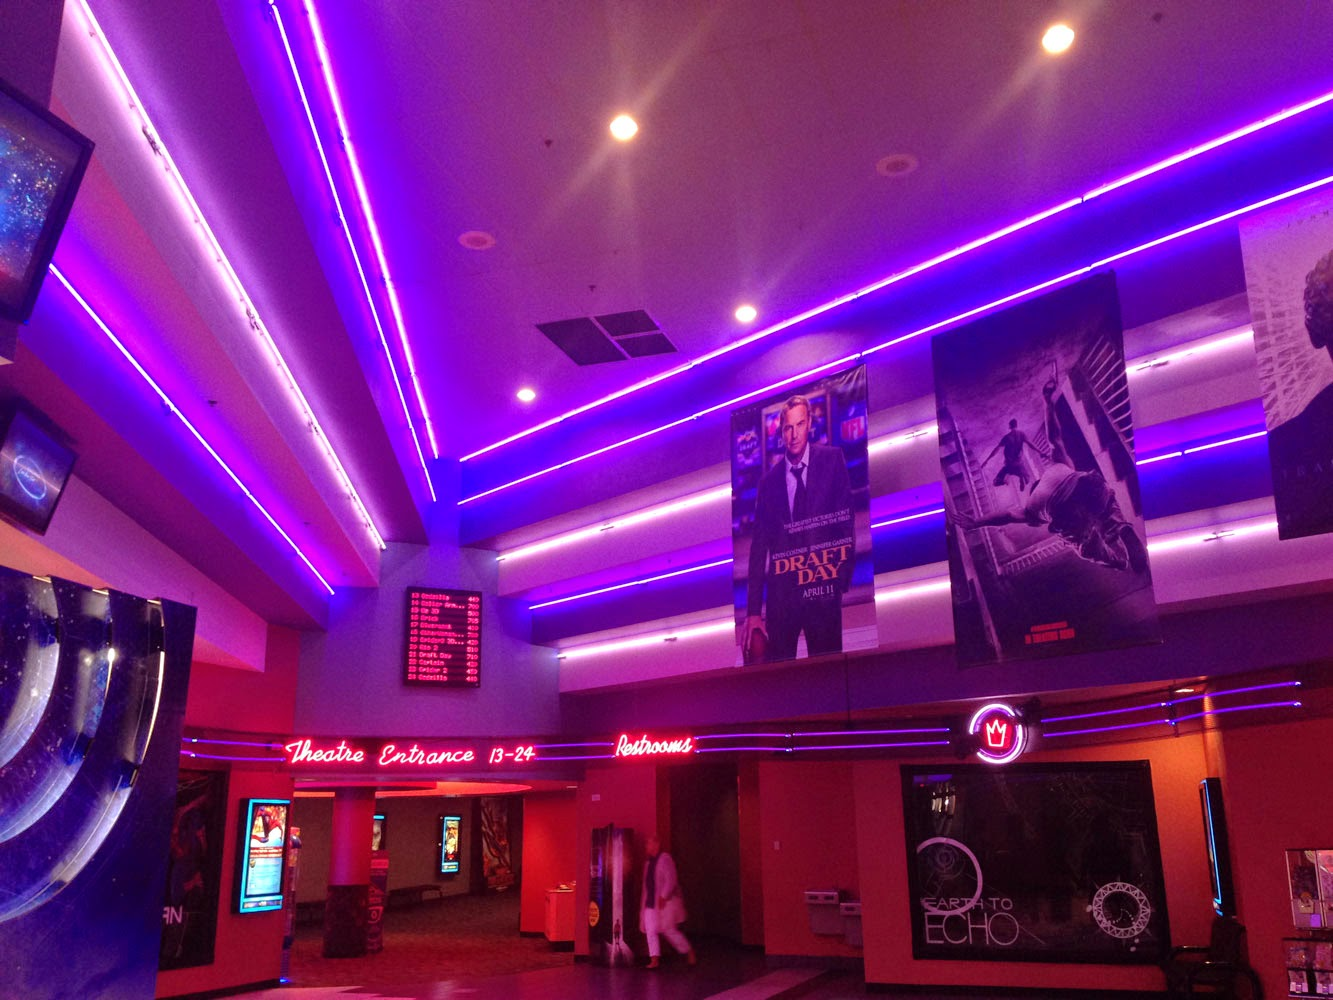 Find Regal Hollywood 24 @ North I showtimes and theater information at Fandango. Buy tickets, get box office information, driving directions and more.